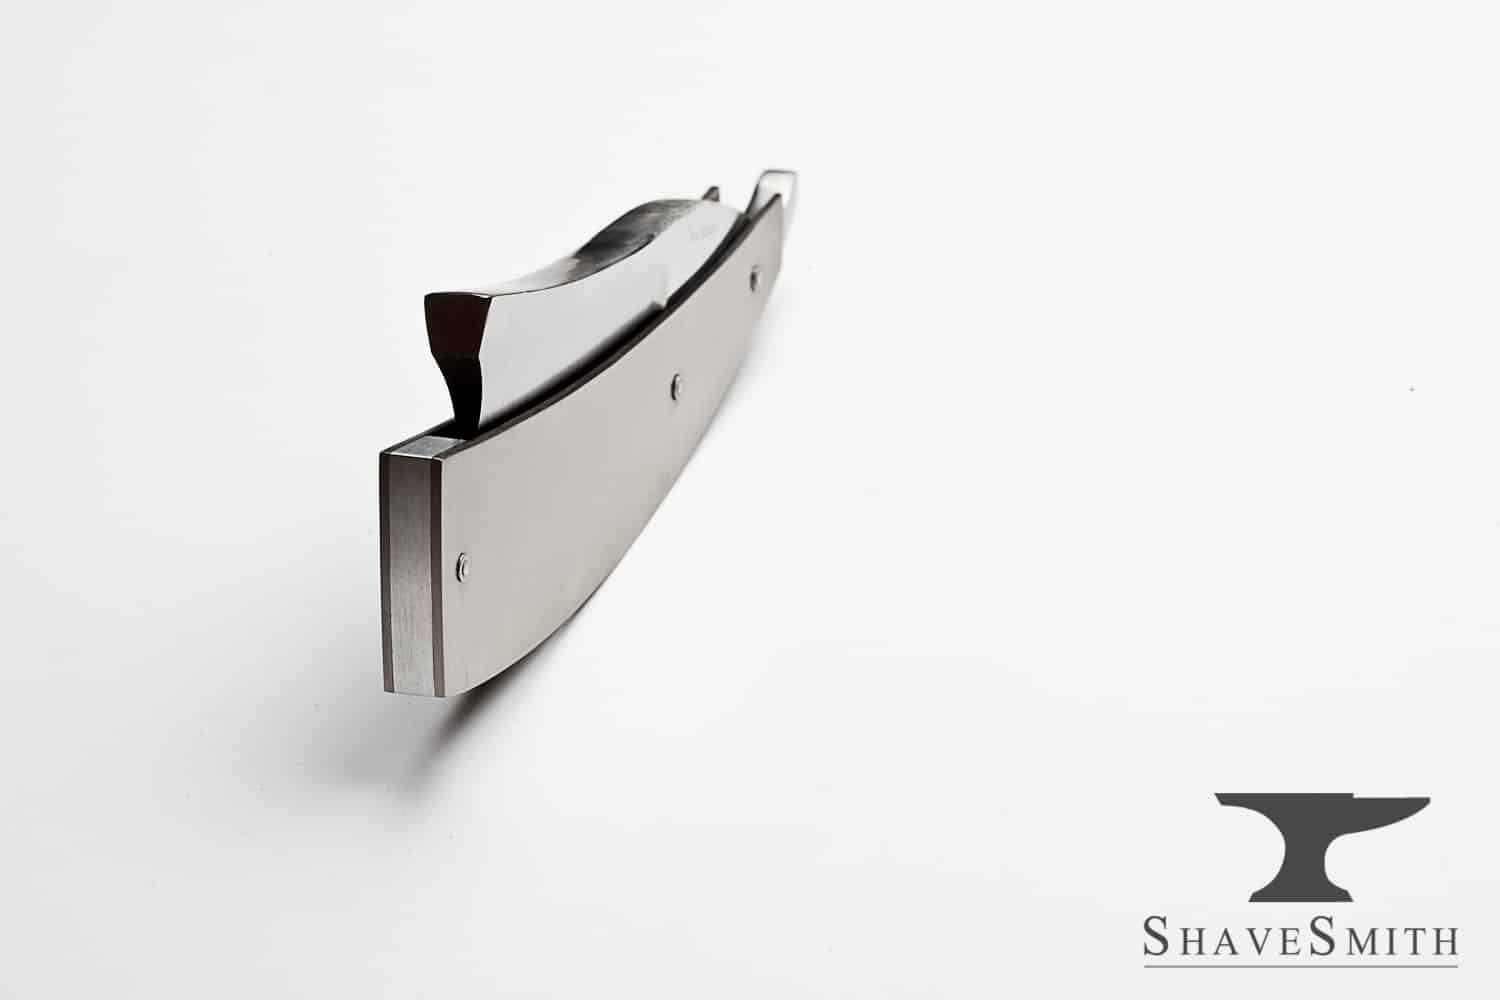 12/8 Sheffield Style Straight Razor in Brushed Titanium Handles.